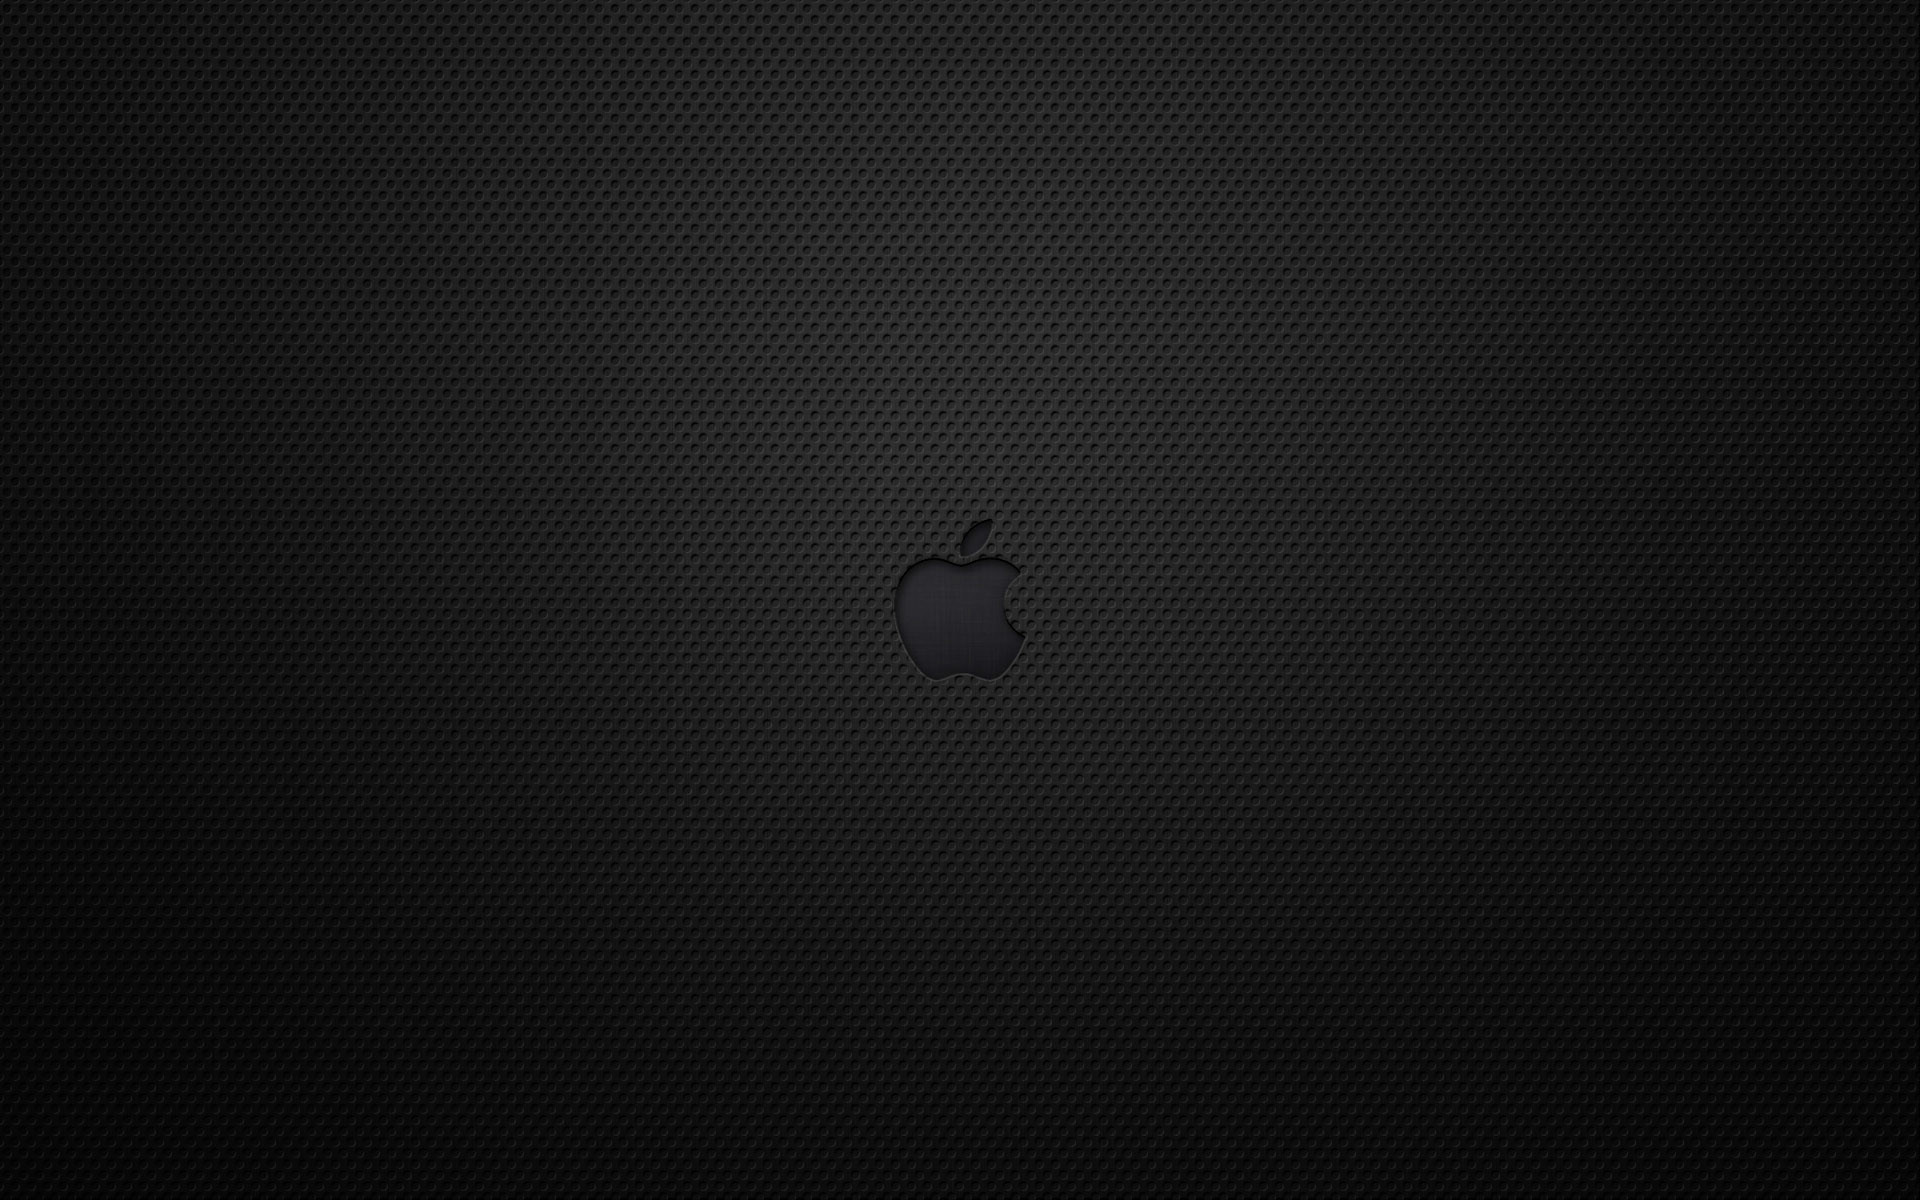 1920x1200 Best ideas about Mac Wallpaper on Pinterest Laptop wallpaper 2560×1440 Free  Desktop Wallpapers For